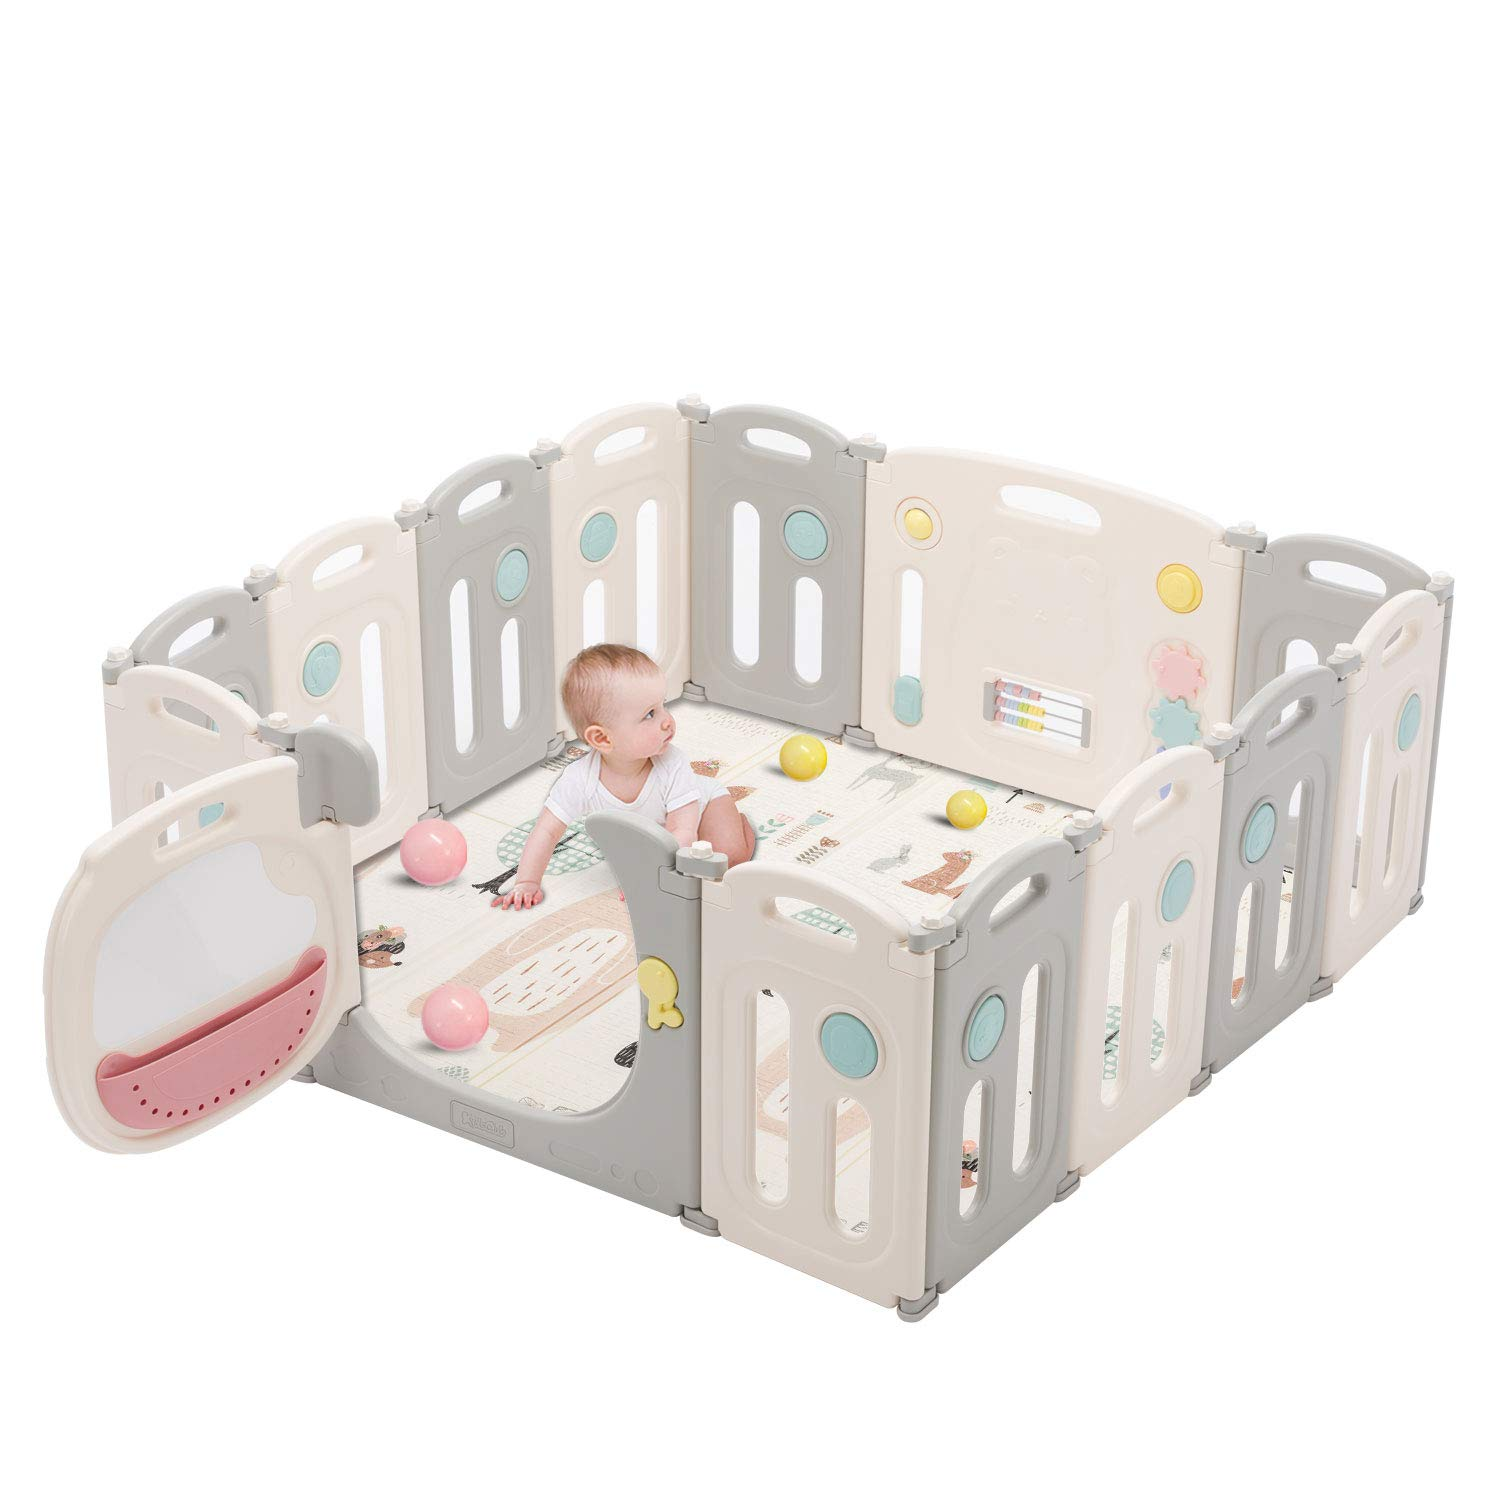 Kidsclub Baby Play Yards Foldable Safety Play Center Baby Playpen Home Indoor Outdoor Pen HDPE Material and BPA Free Baby Fence Infant Play Pin for 3M-6Y (14 Panel)